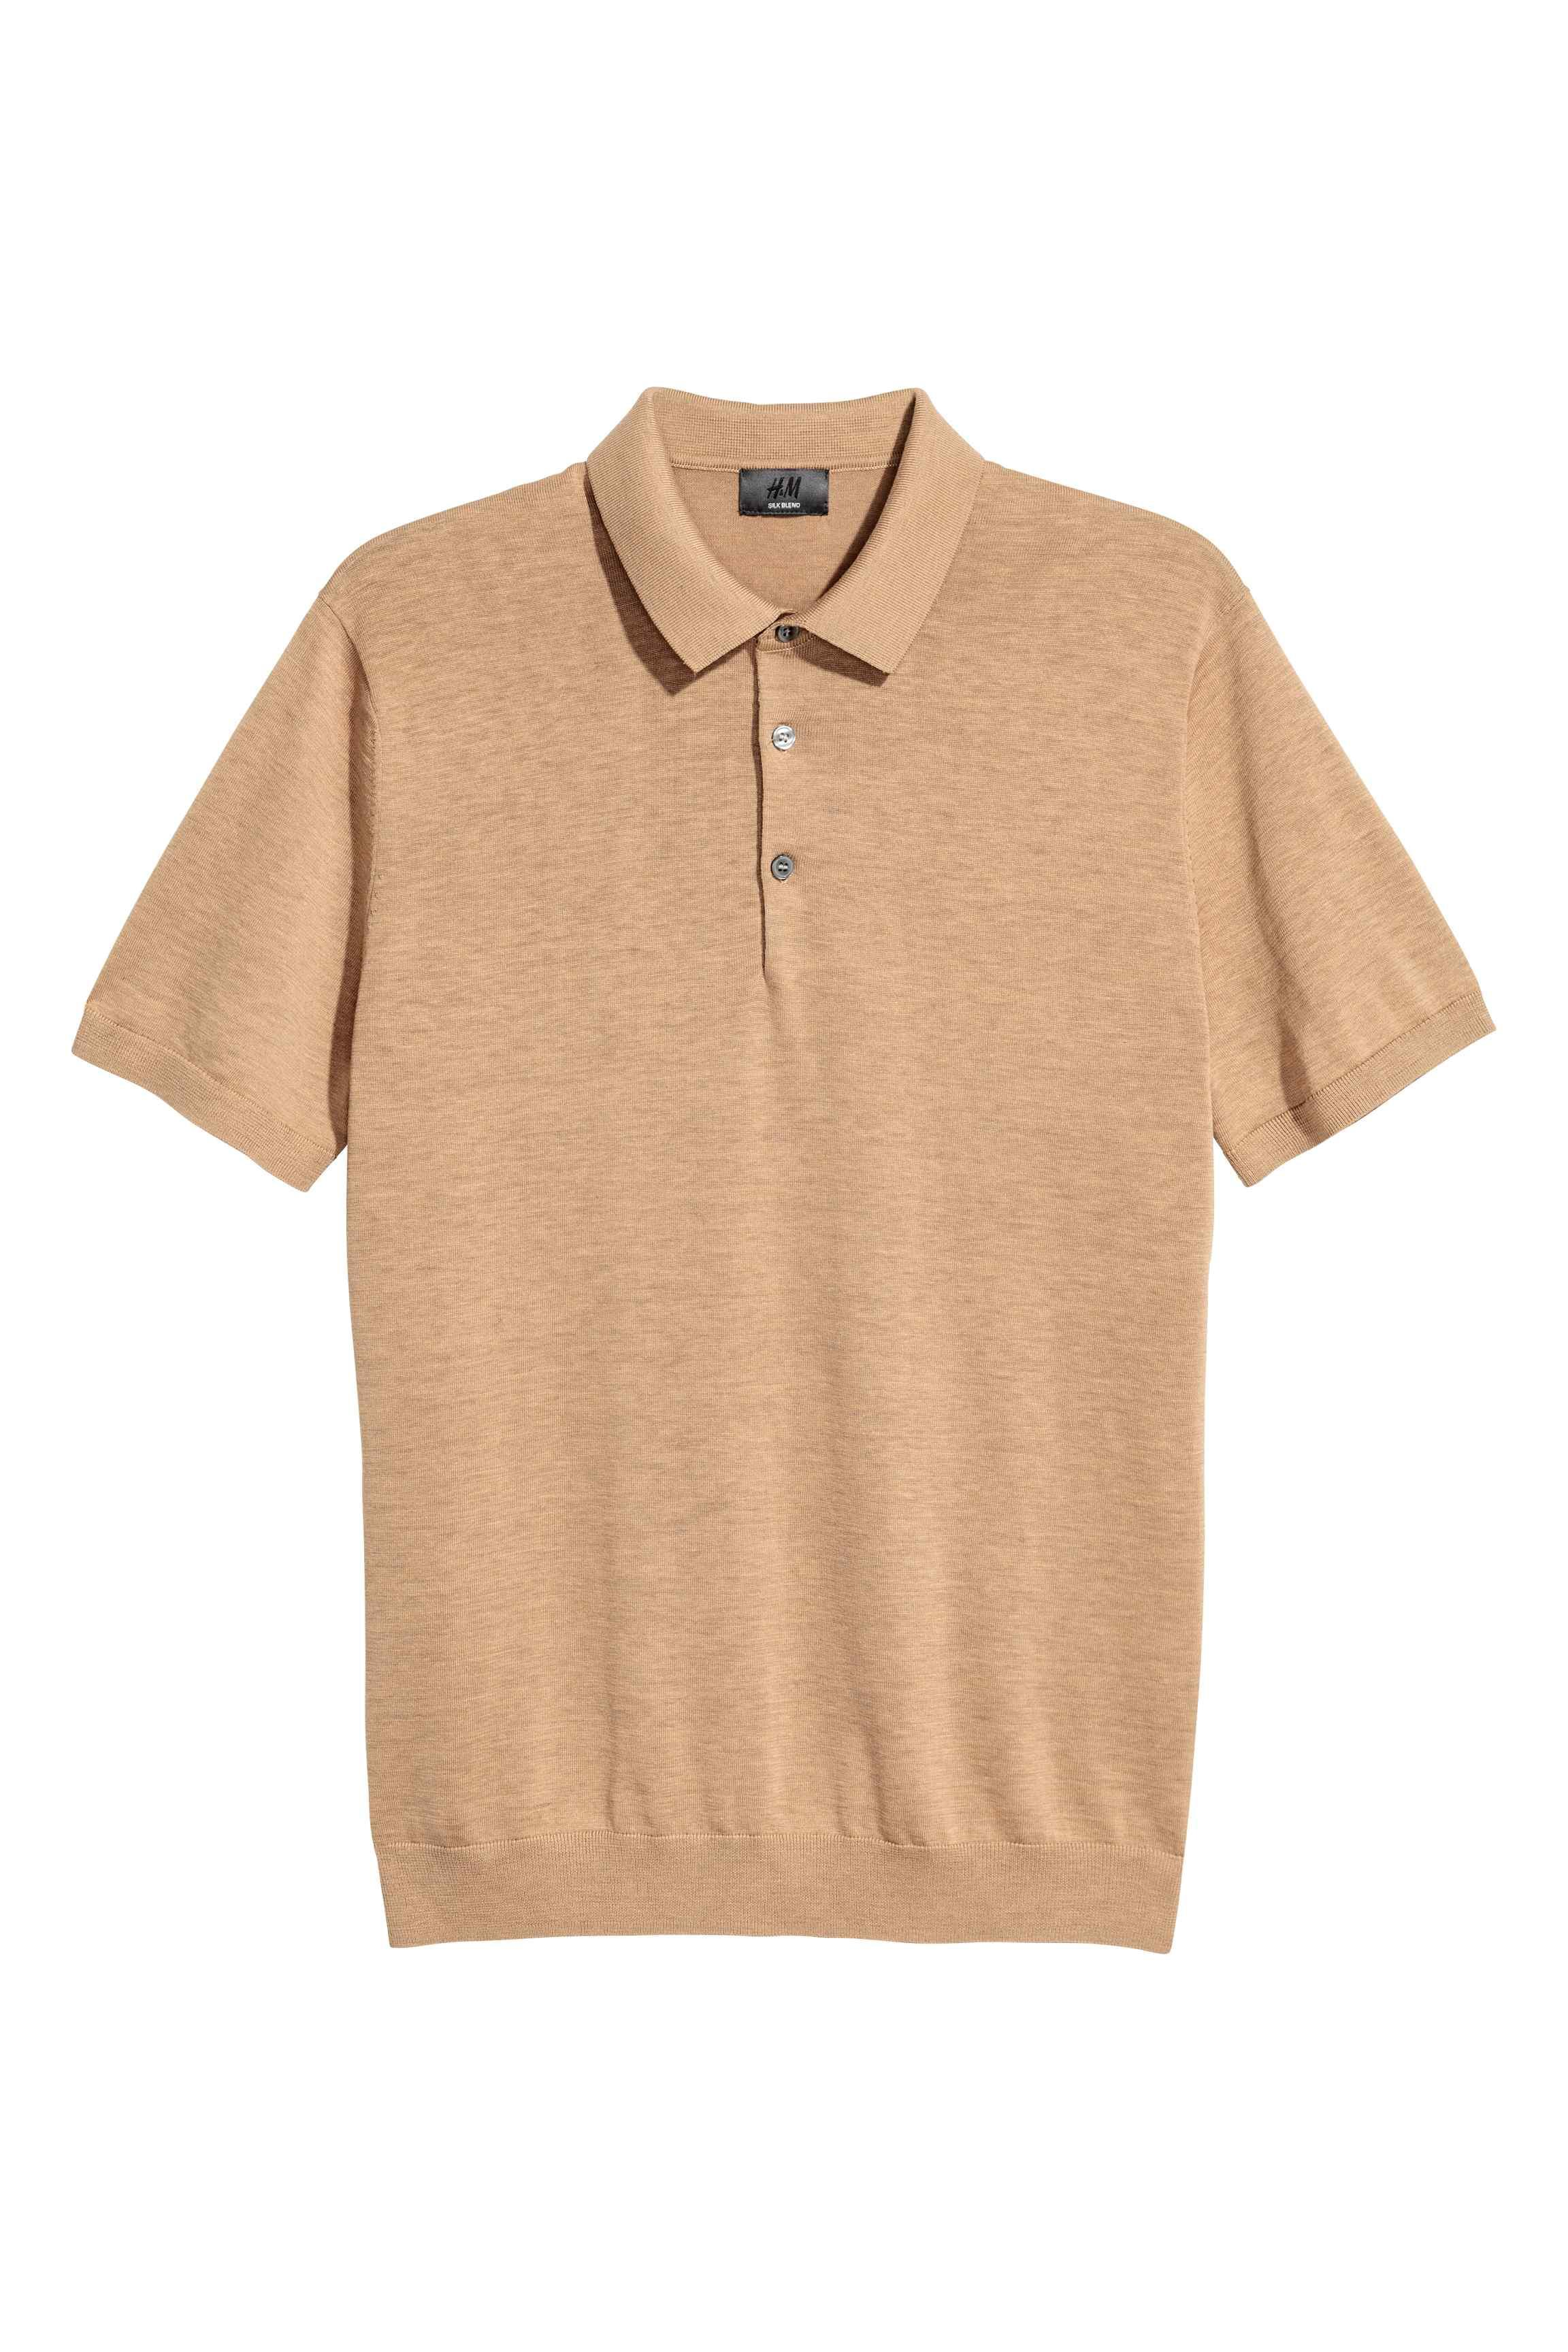 H m silk blend polo shirt in natural for men lyst for H m polo shirt womens